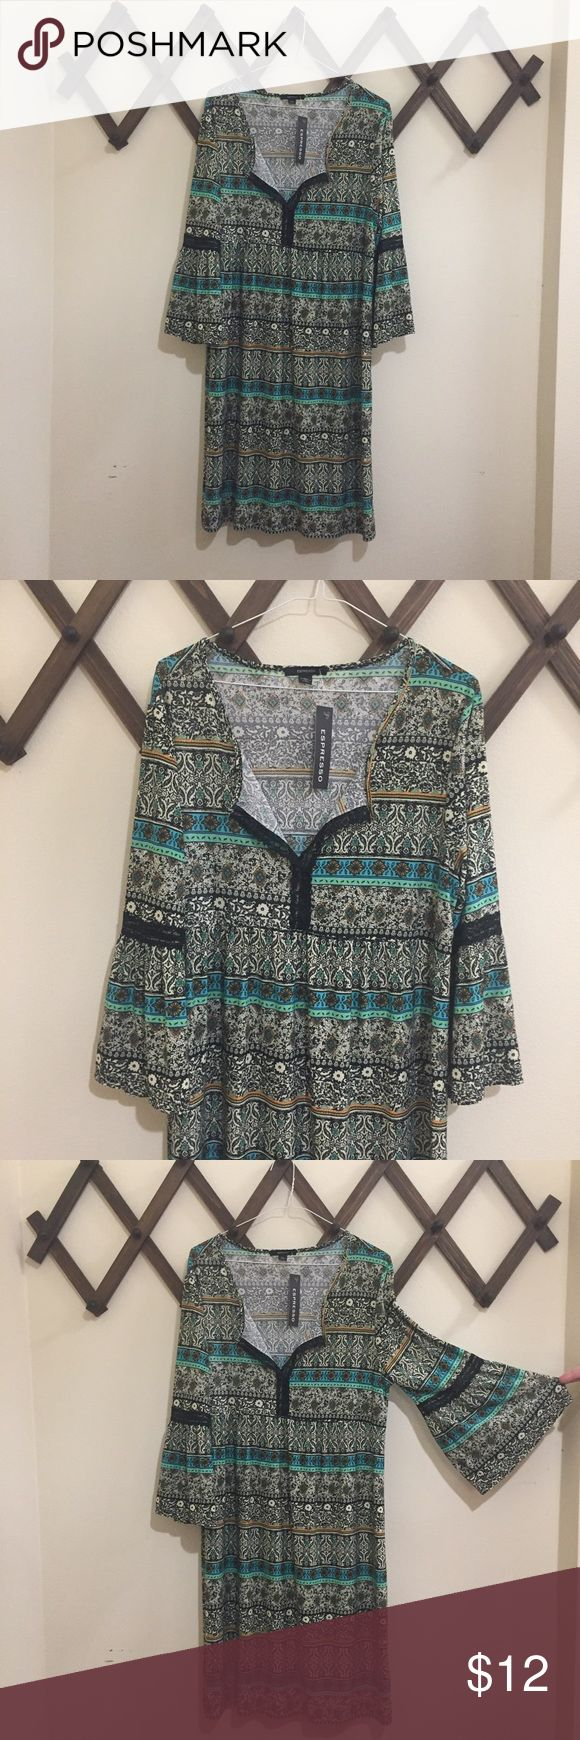 NWT Boho Bell Sleeve Lace Patterned Mini Dress NWT H&M Floral Sleeveless Button Down Mini Dress. Flimsy stretchy material. Lace details on the sleeves and neckline. Brand new never worn ❗️does have a hole that I never noticed until recently but can easily be fixed❗️ ❗️ no trades ❗️black and cream with green accents with black lace. Espresso Dresses Mini